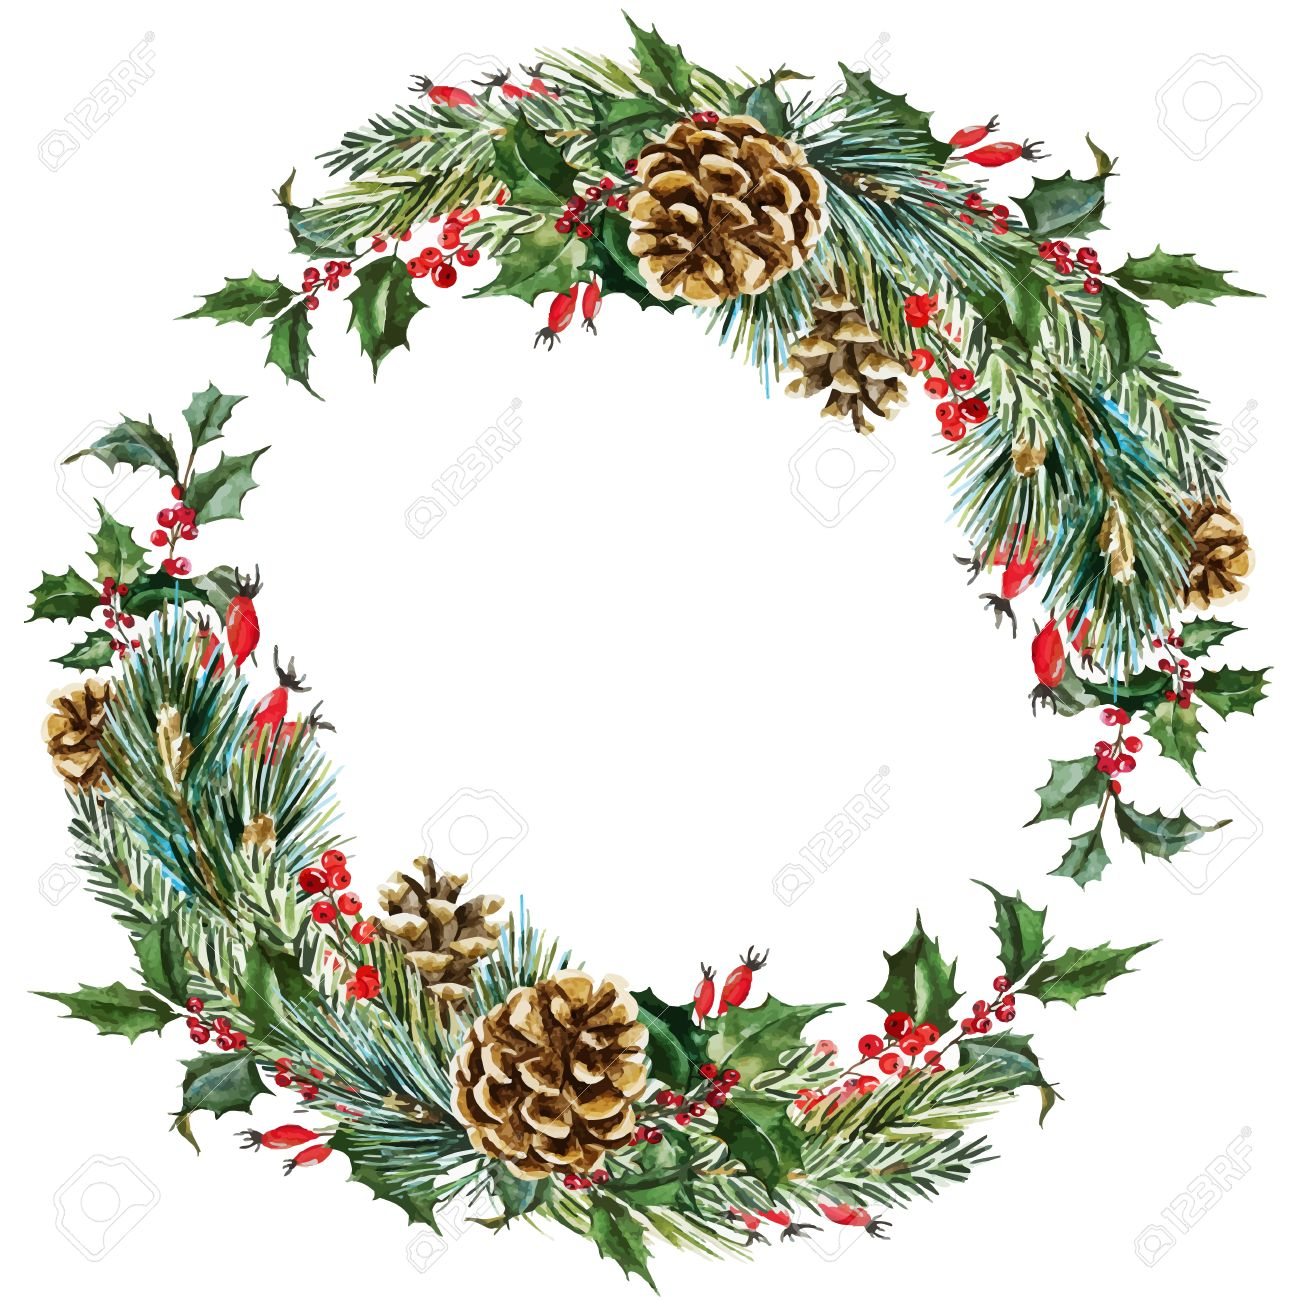 Beautiful Vector Image With Nice Hand Drawn Watercolor Christmas